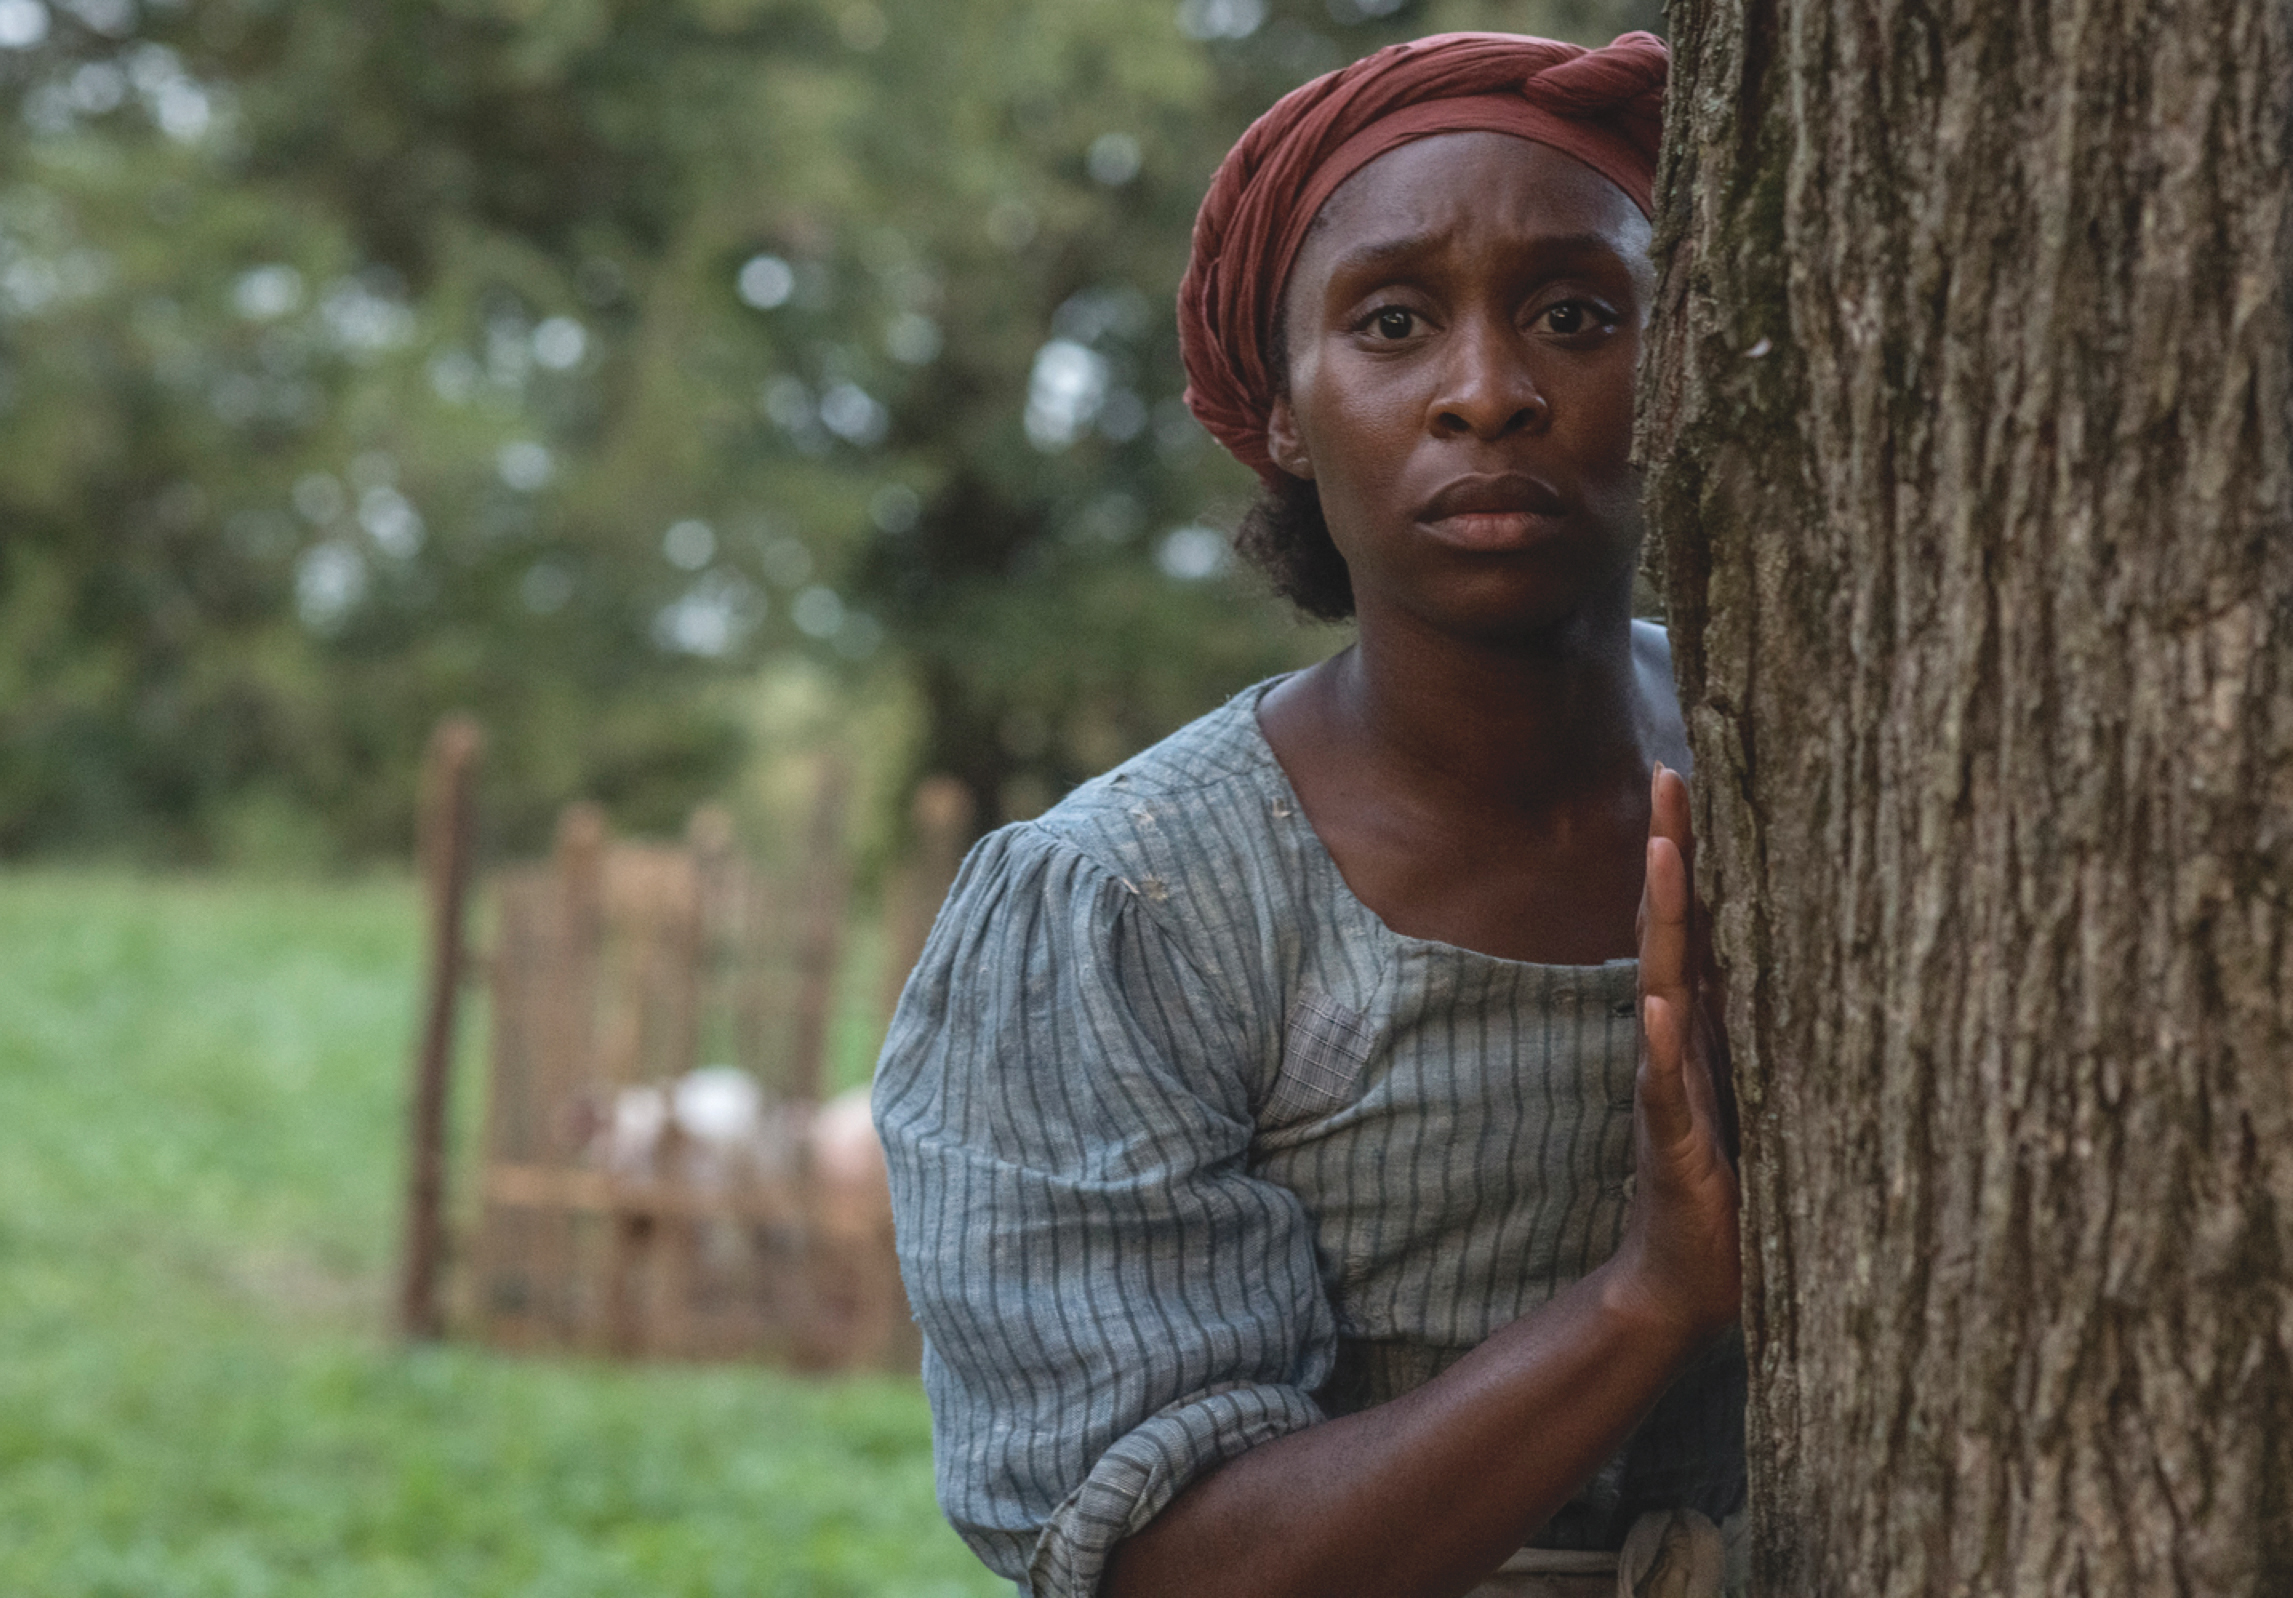 """The world premiere for """"Harriet"""" will take place at the Toronto International Film Festival in September 2019. (Photo: YouTube)"""